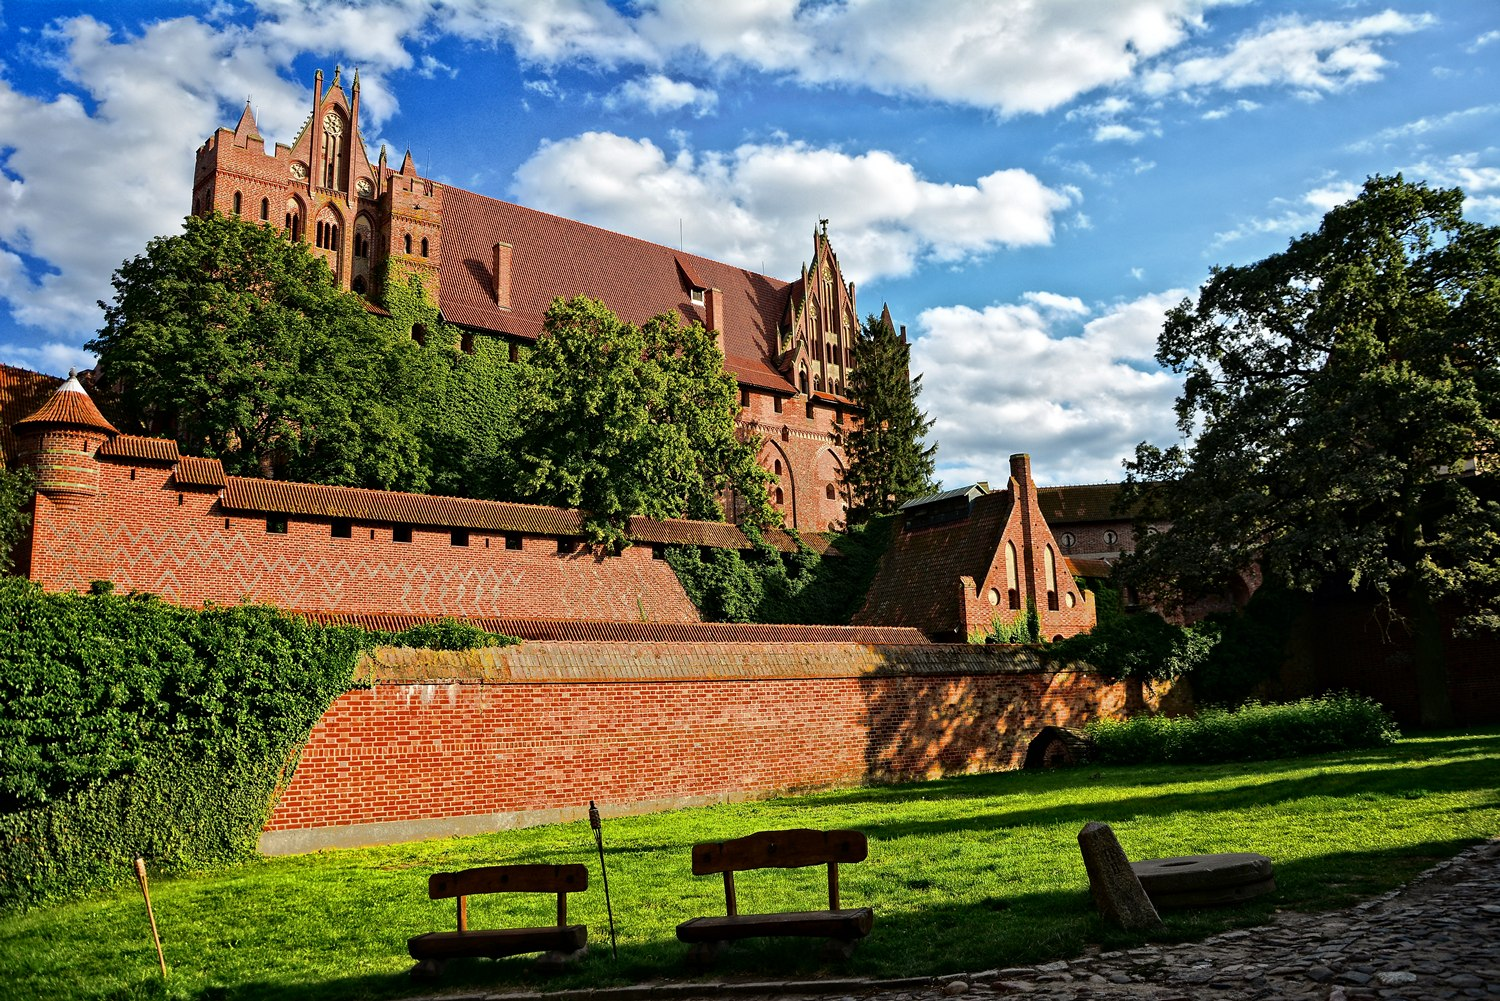 castles in poland malbork castle what to see in poland interesting places in poland